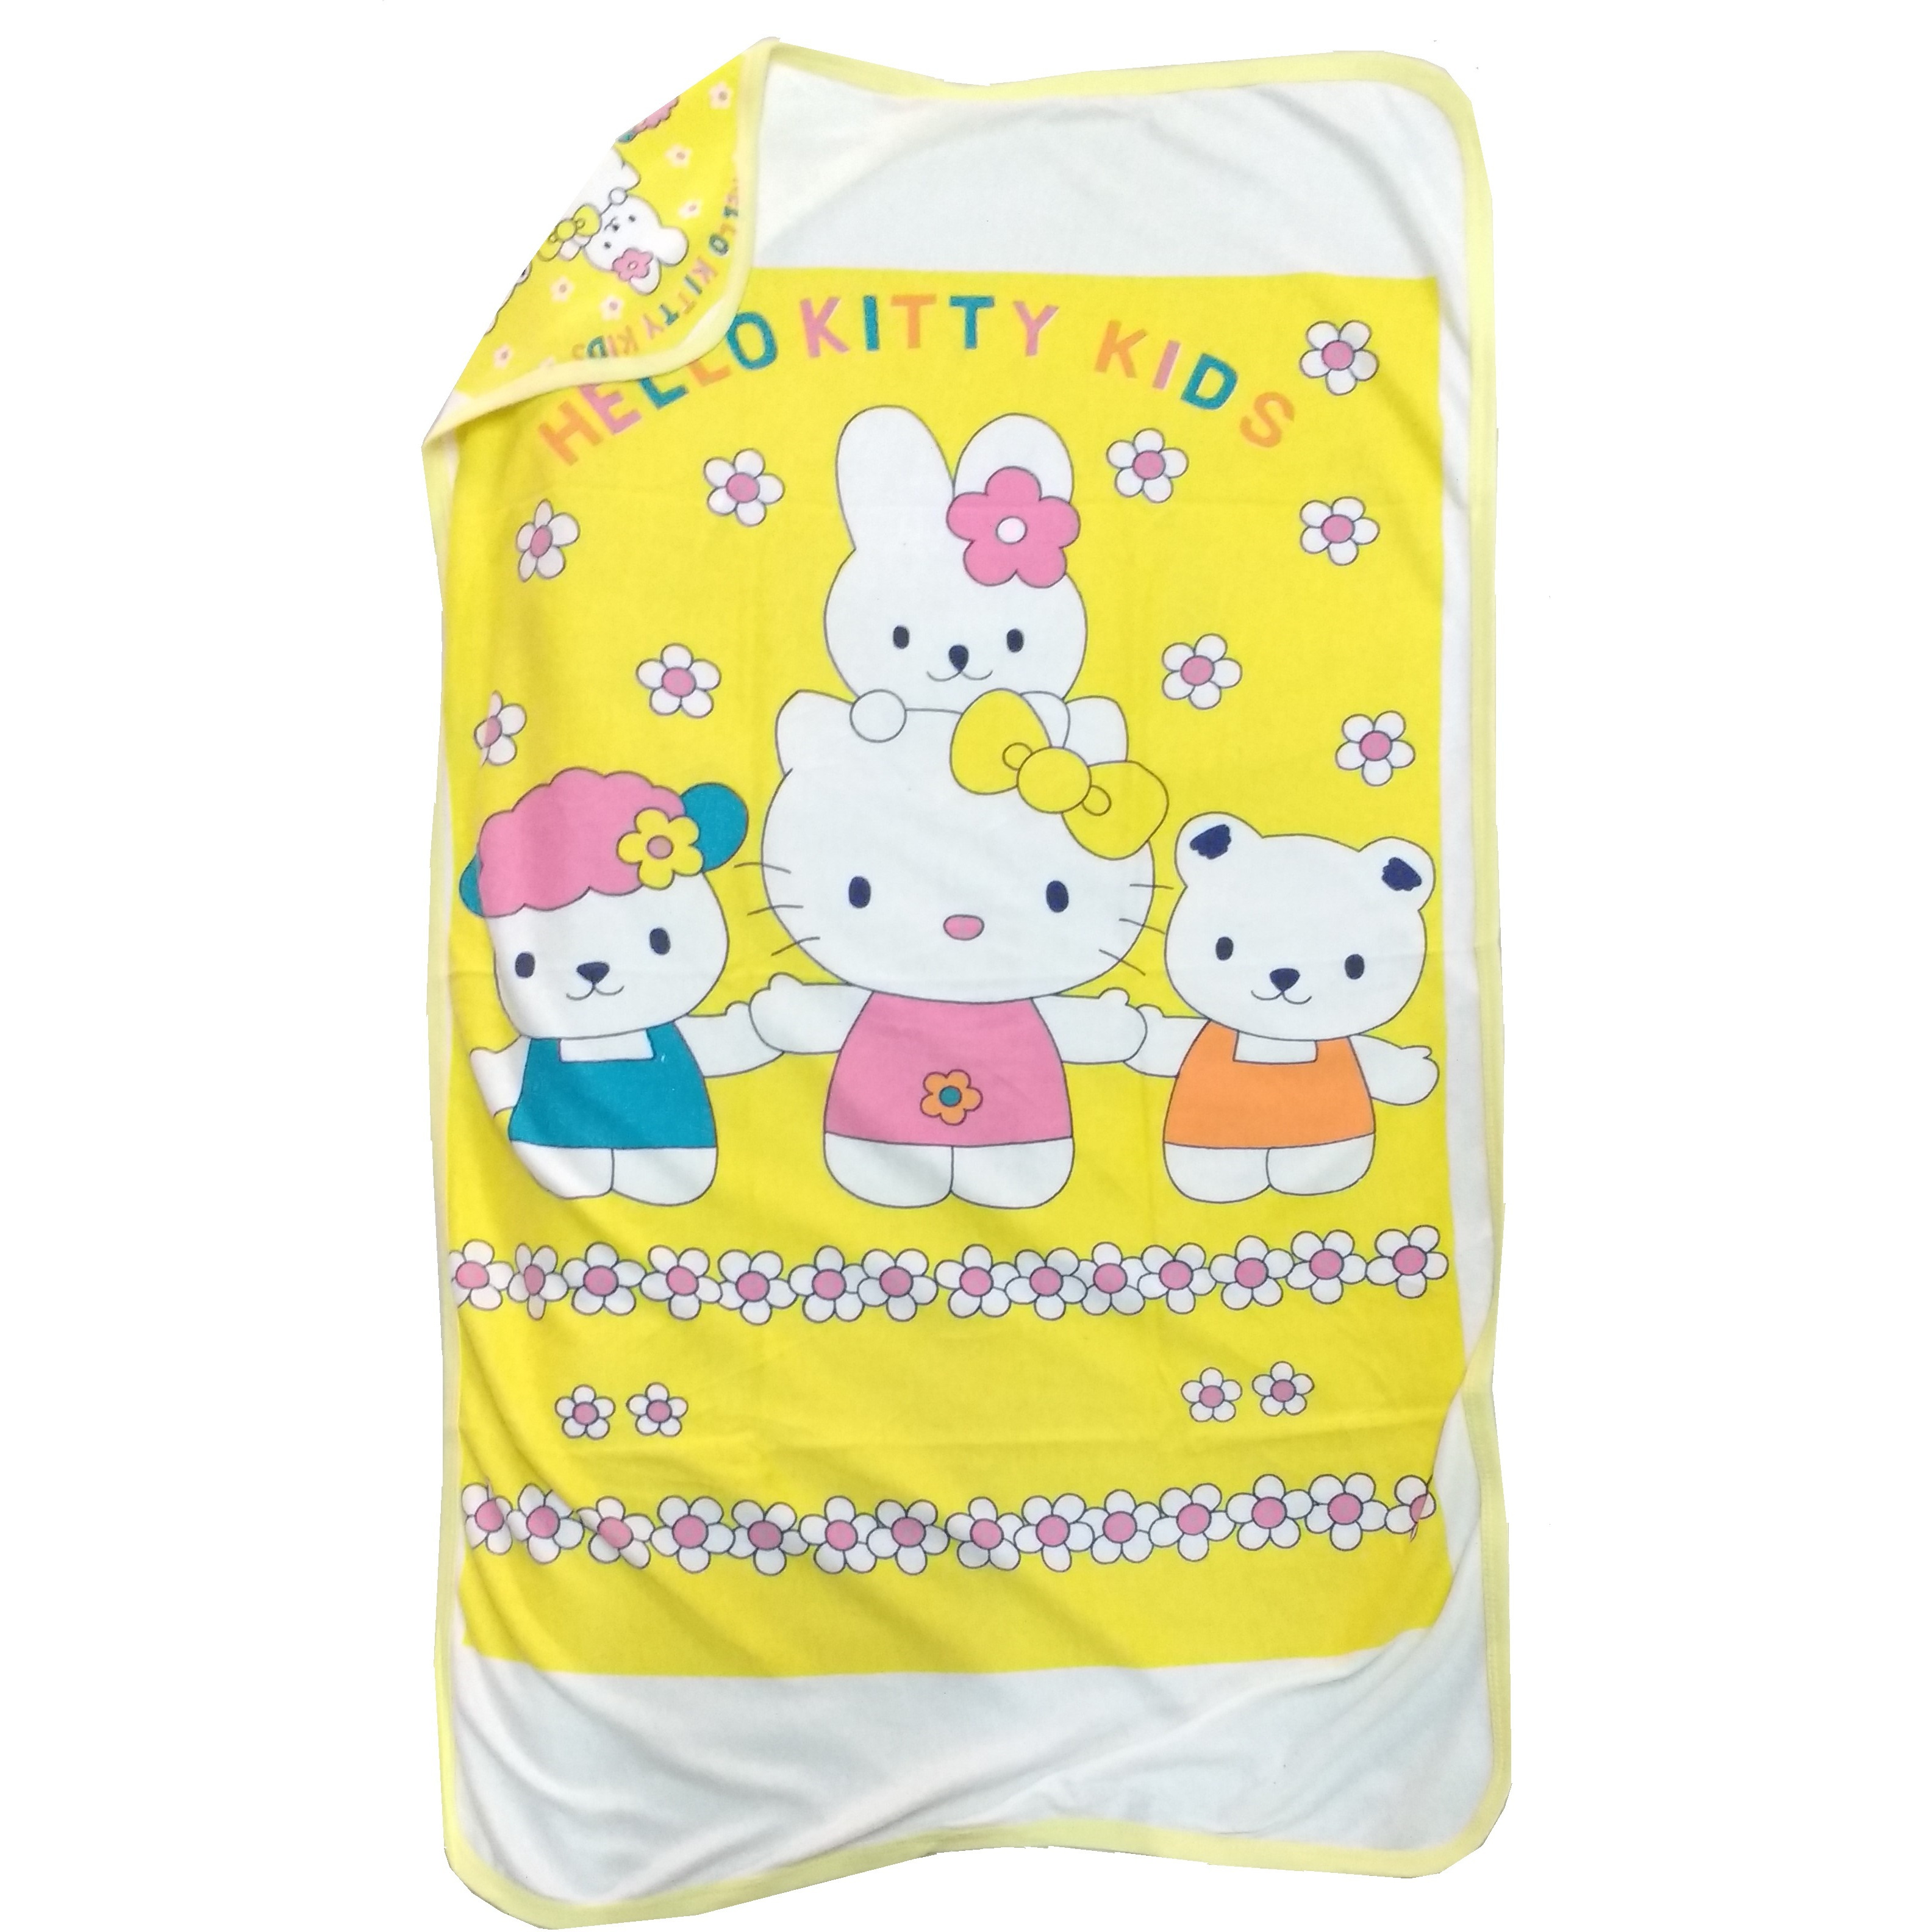 Love Baby Bath Towel Cotton Printed With Hood - 1911 P2 Yellow